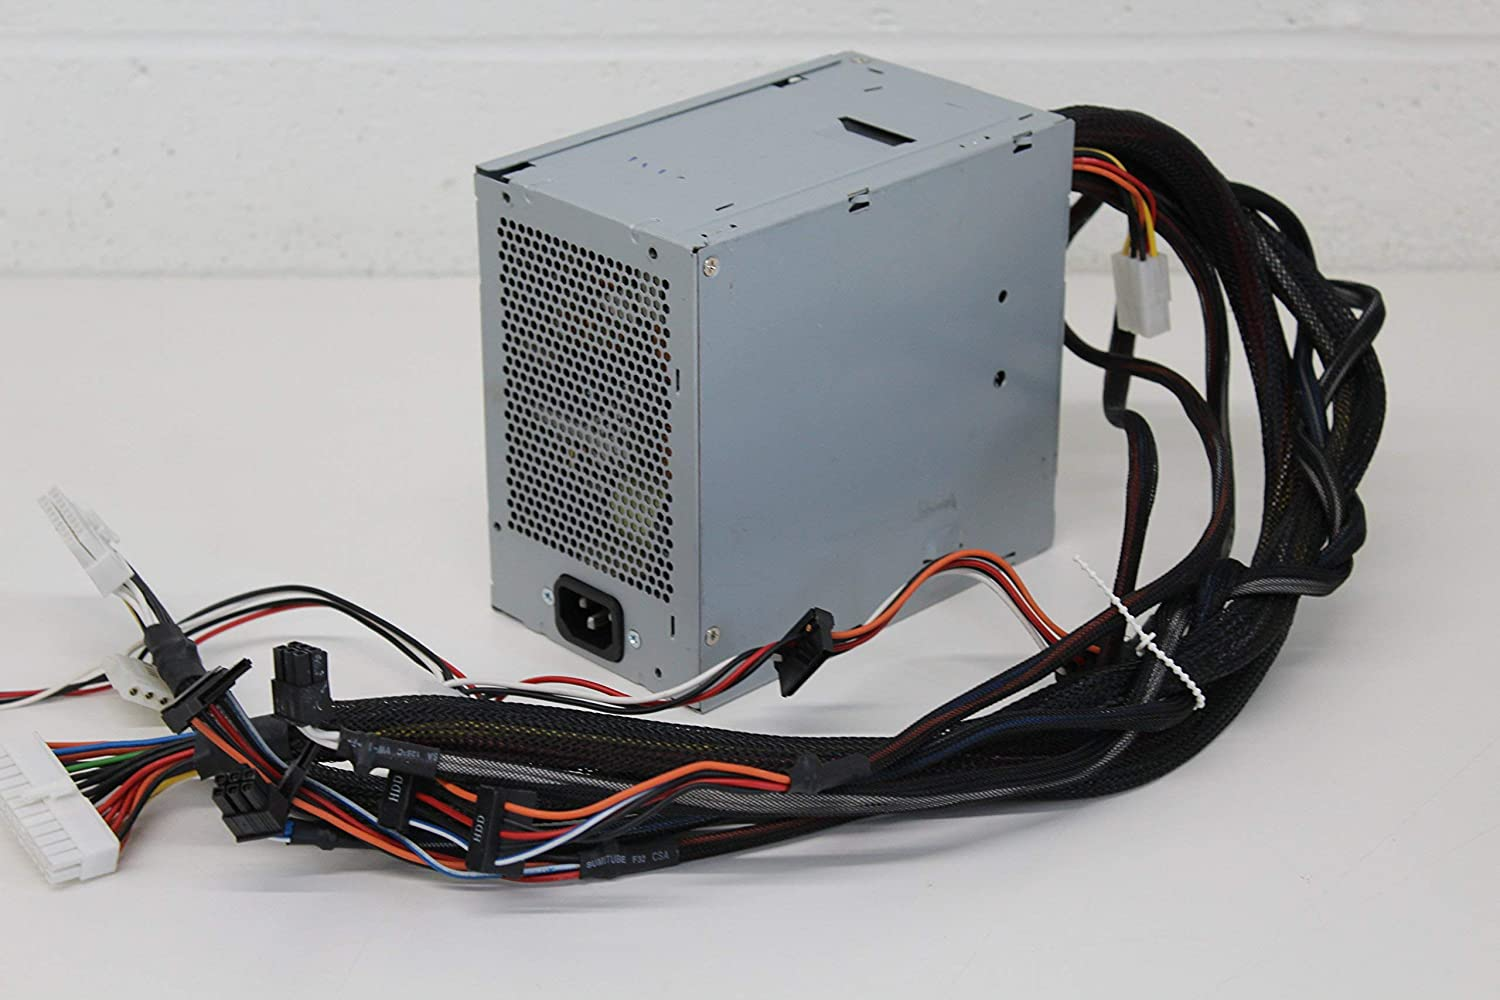 Genuine Dell MG309 750W Power Supply For XPS 700, XPS 710, XPS 720 Systems, Identical Dell Part Numbers: NG153, DR552, Model Numbers: H750P-00, HP-W7508F3W (Renewed)